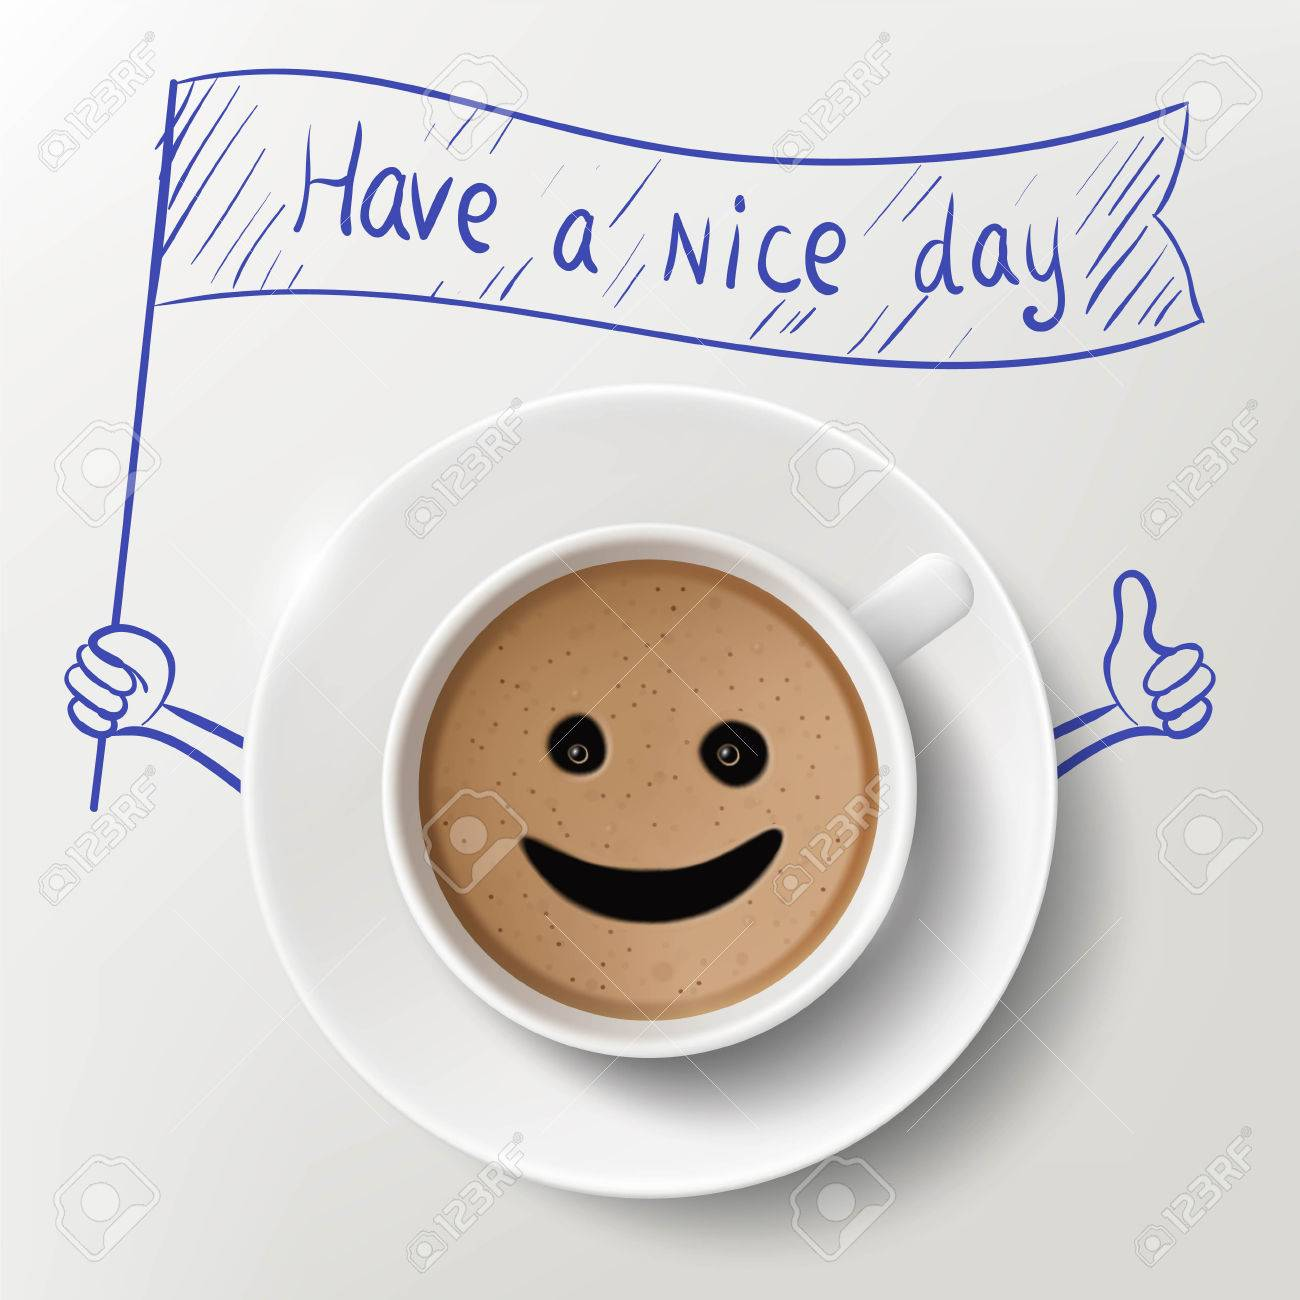 Cup Of Coffee And Doodle Image With Have A Nice Day Massage